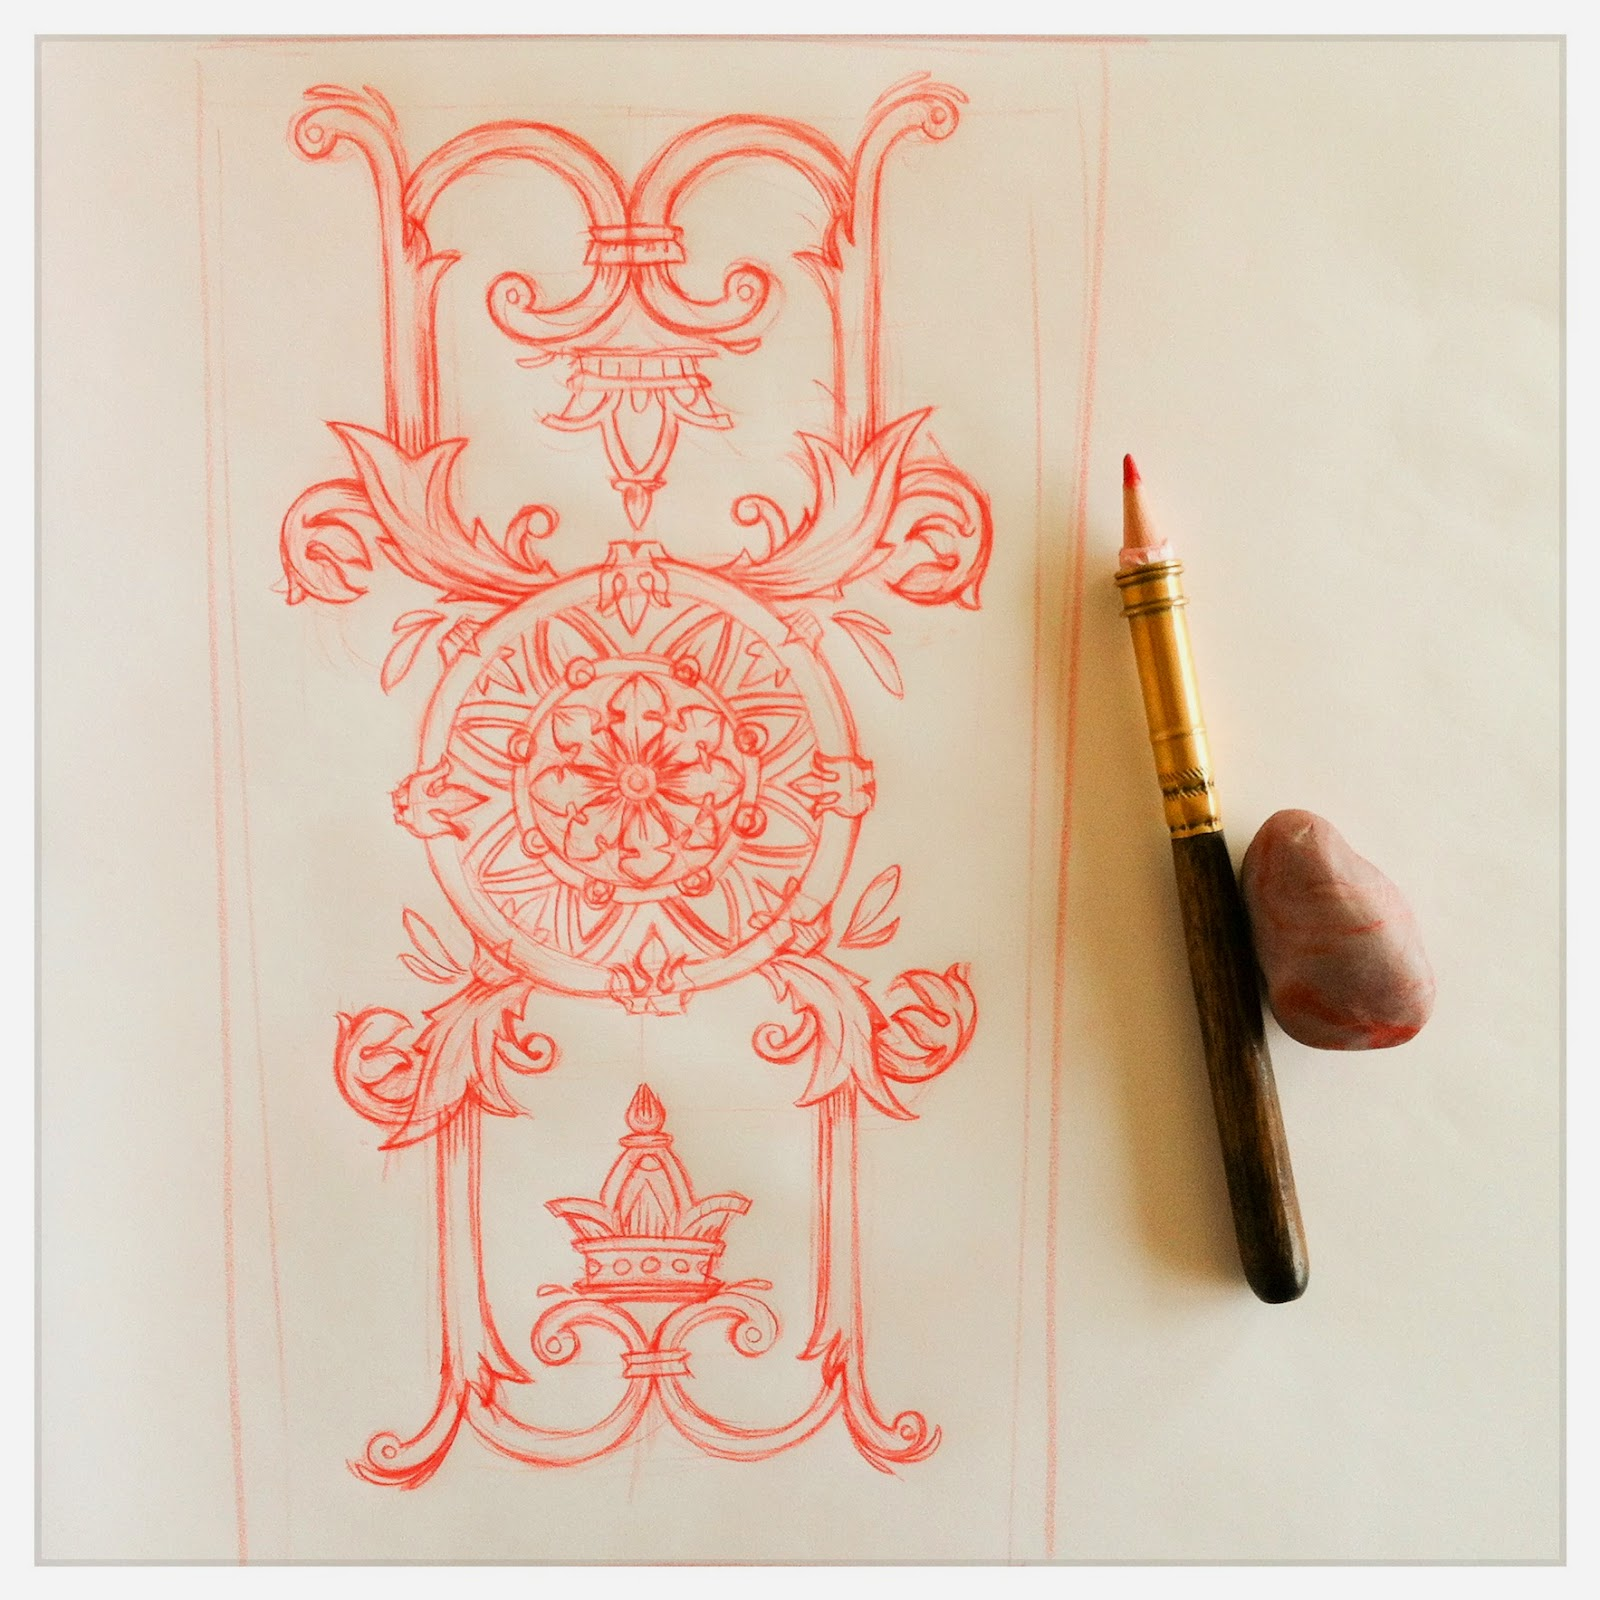 Design for: Ace of Coins -In the spirit of the tarot Marseille - minor arcana - red pencil sketch by Cesare Asaro - Curio & Co. (Curio and Co. OG - www.curioandco.com)